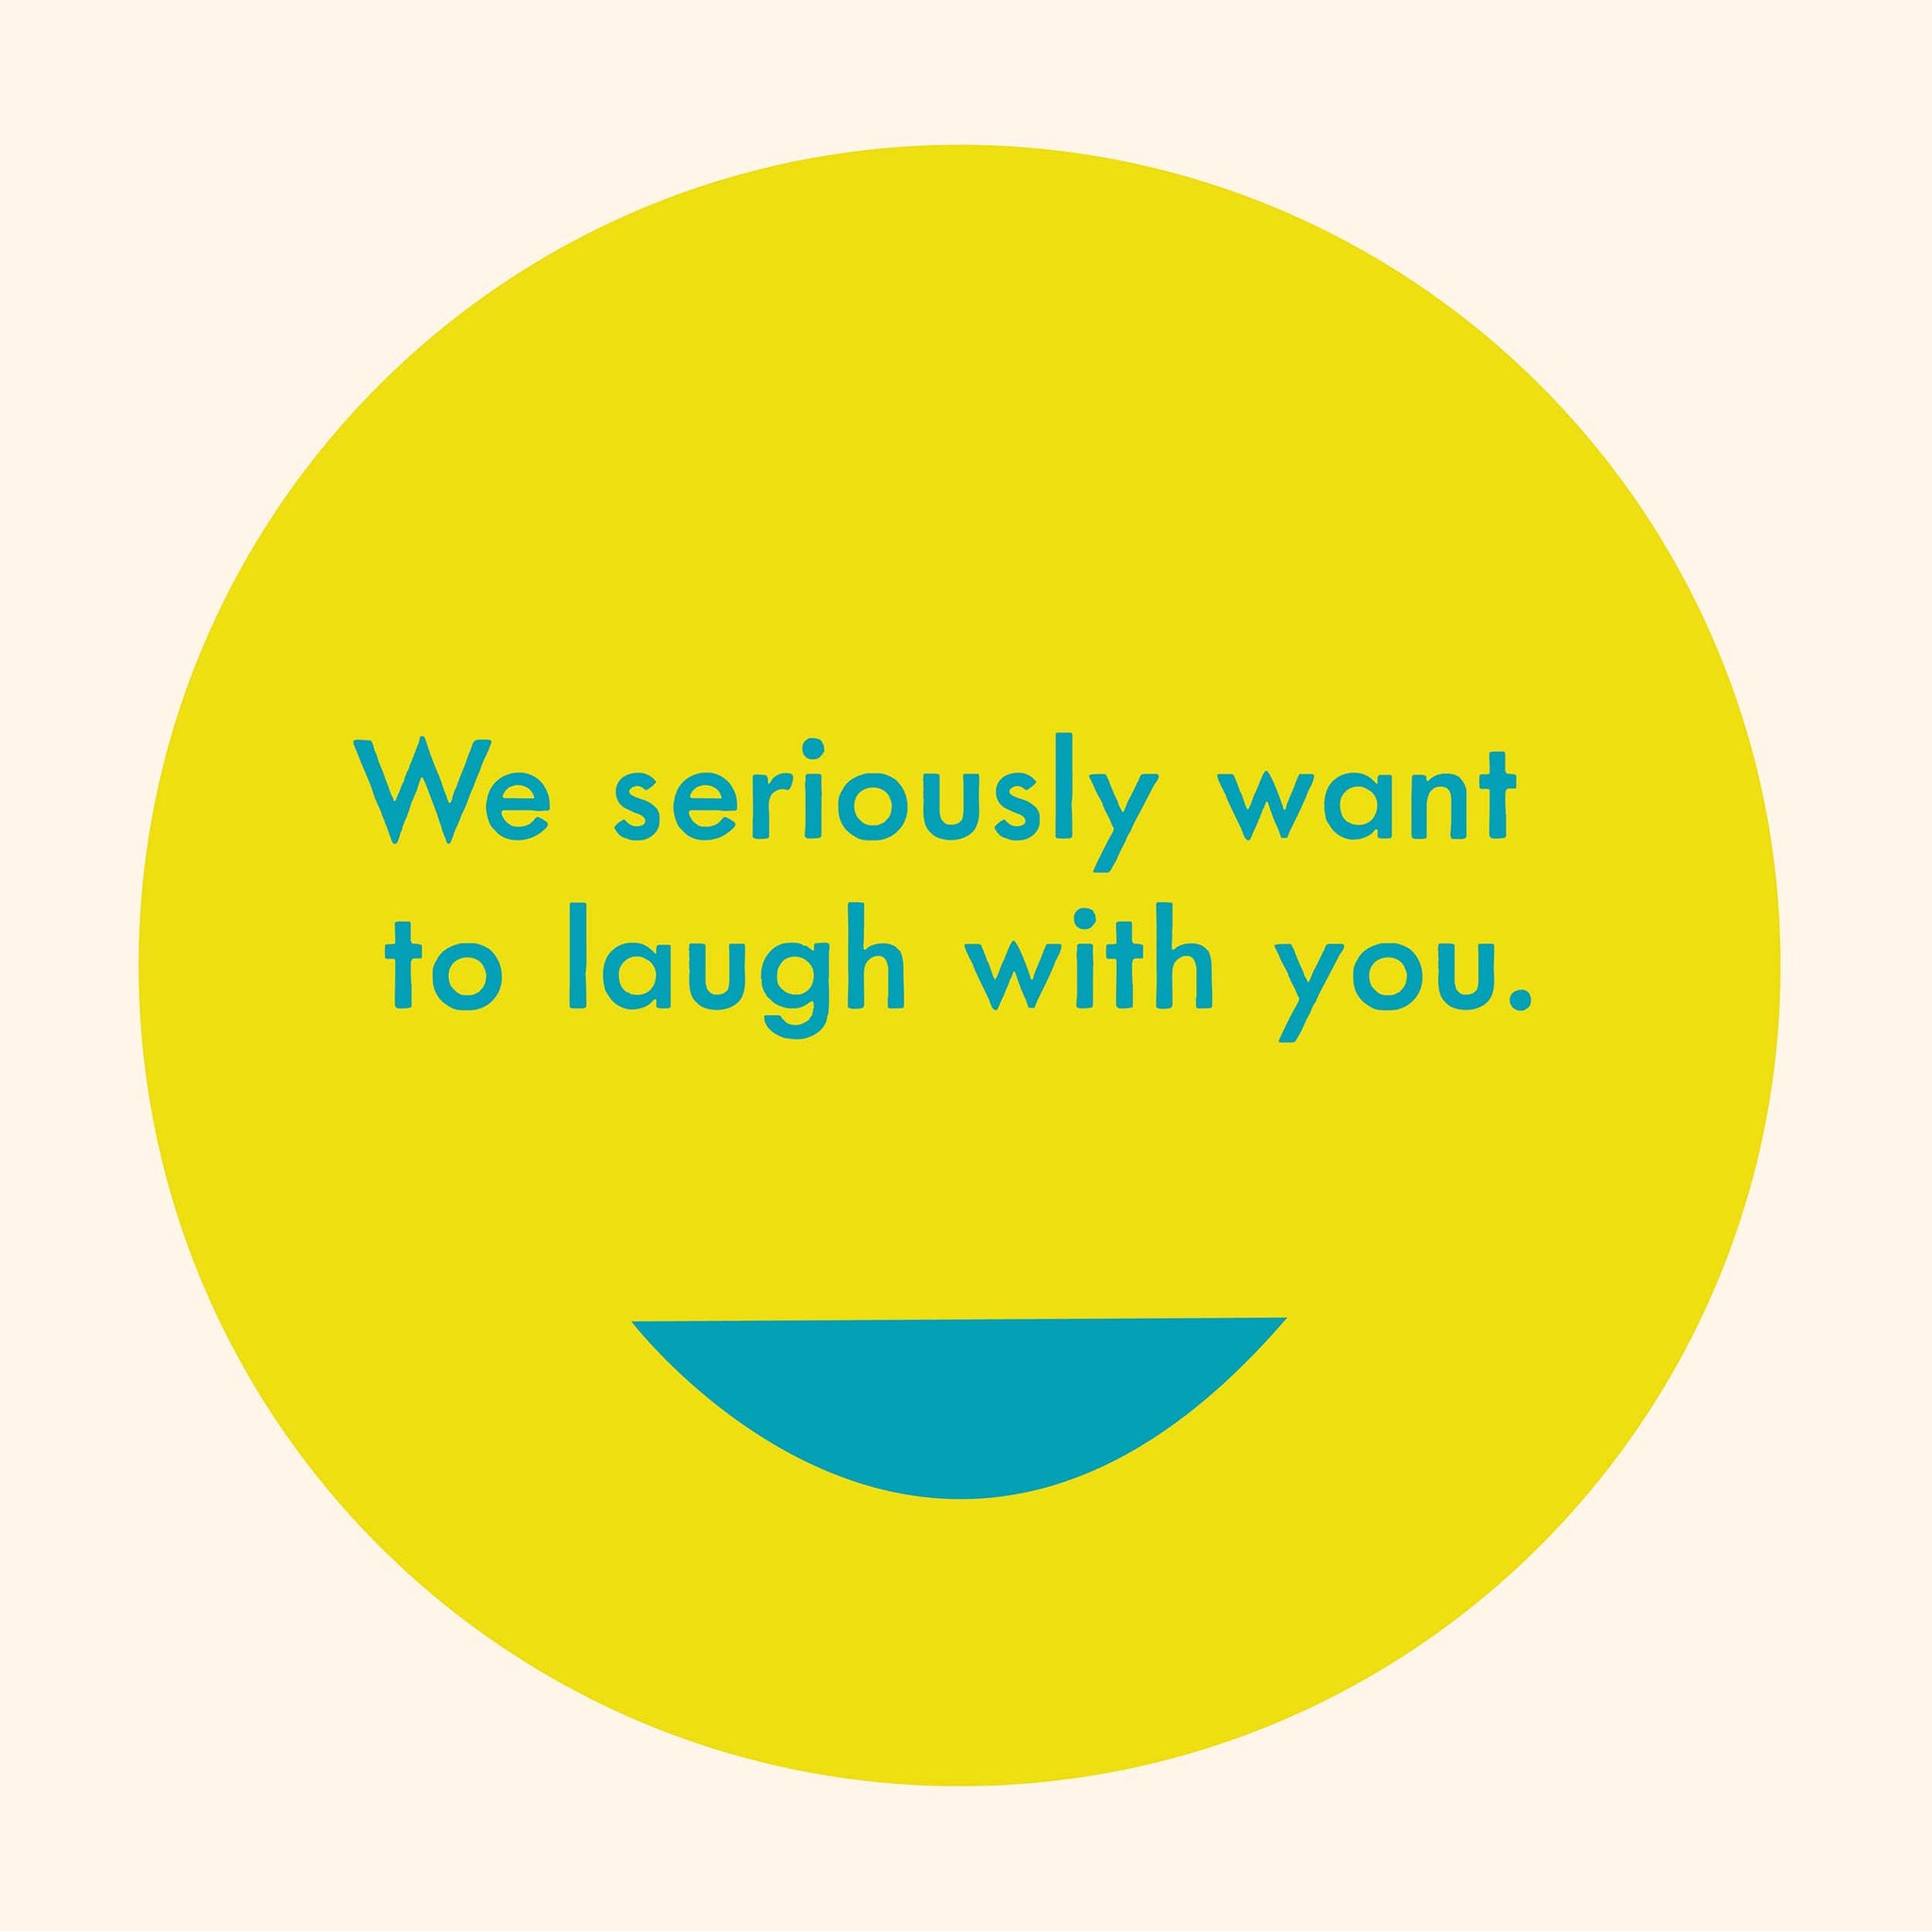 We seriously want to laugh with you.